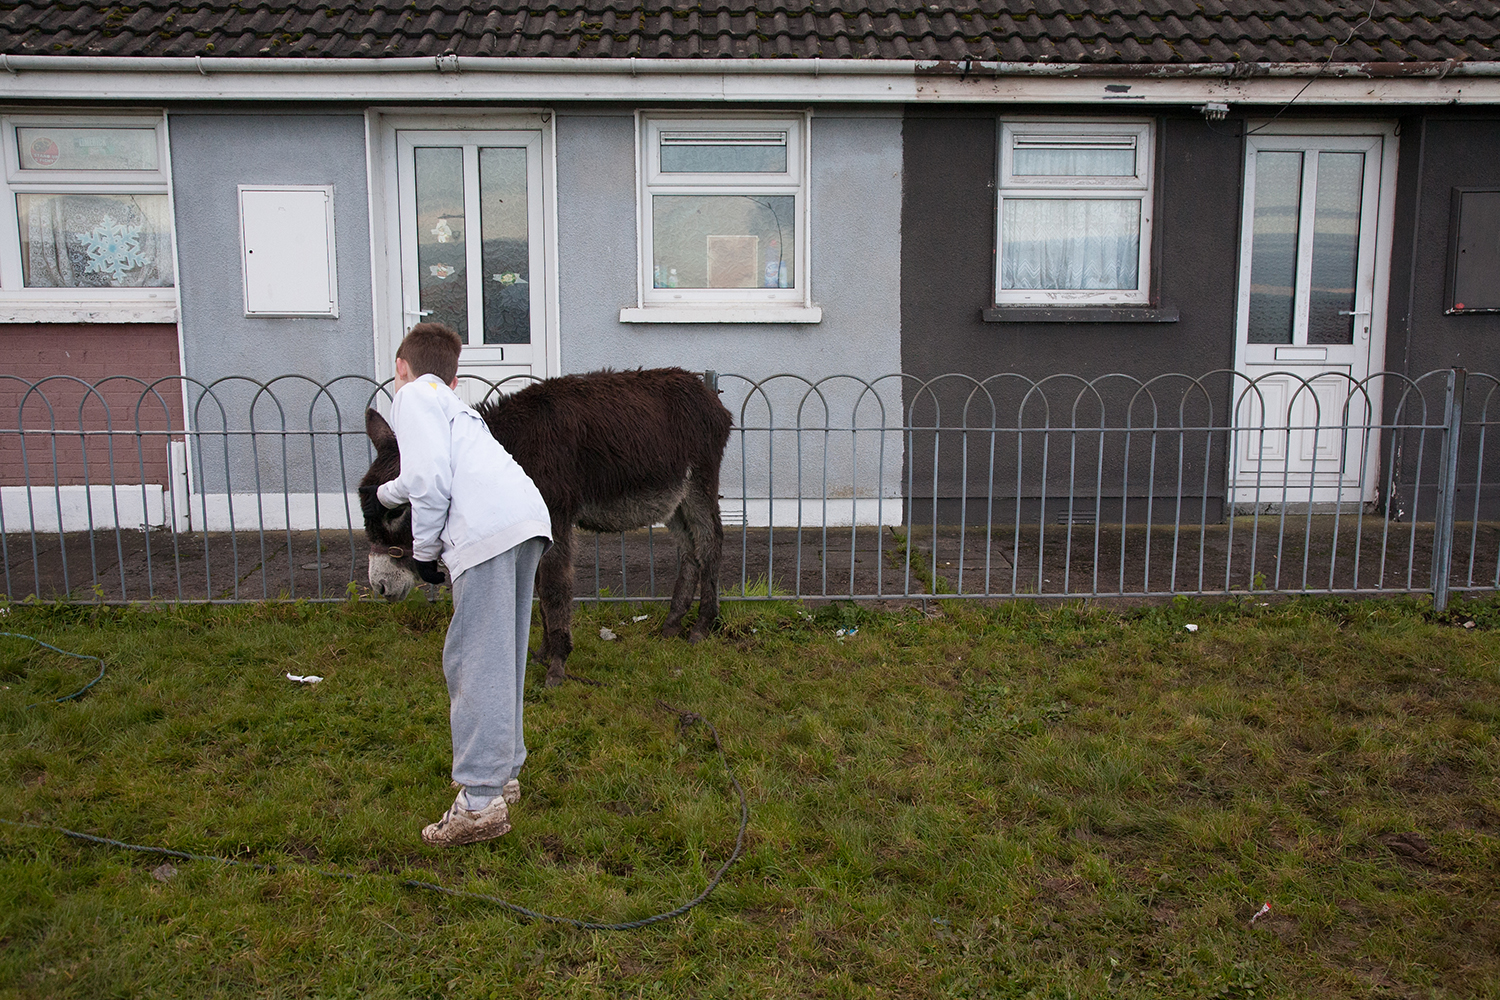 A documentary photograph of a boy petting a donkey in Moyross, Limerick, Ireland